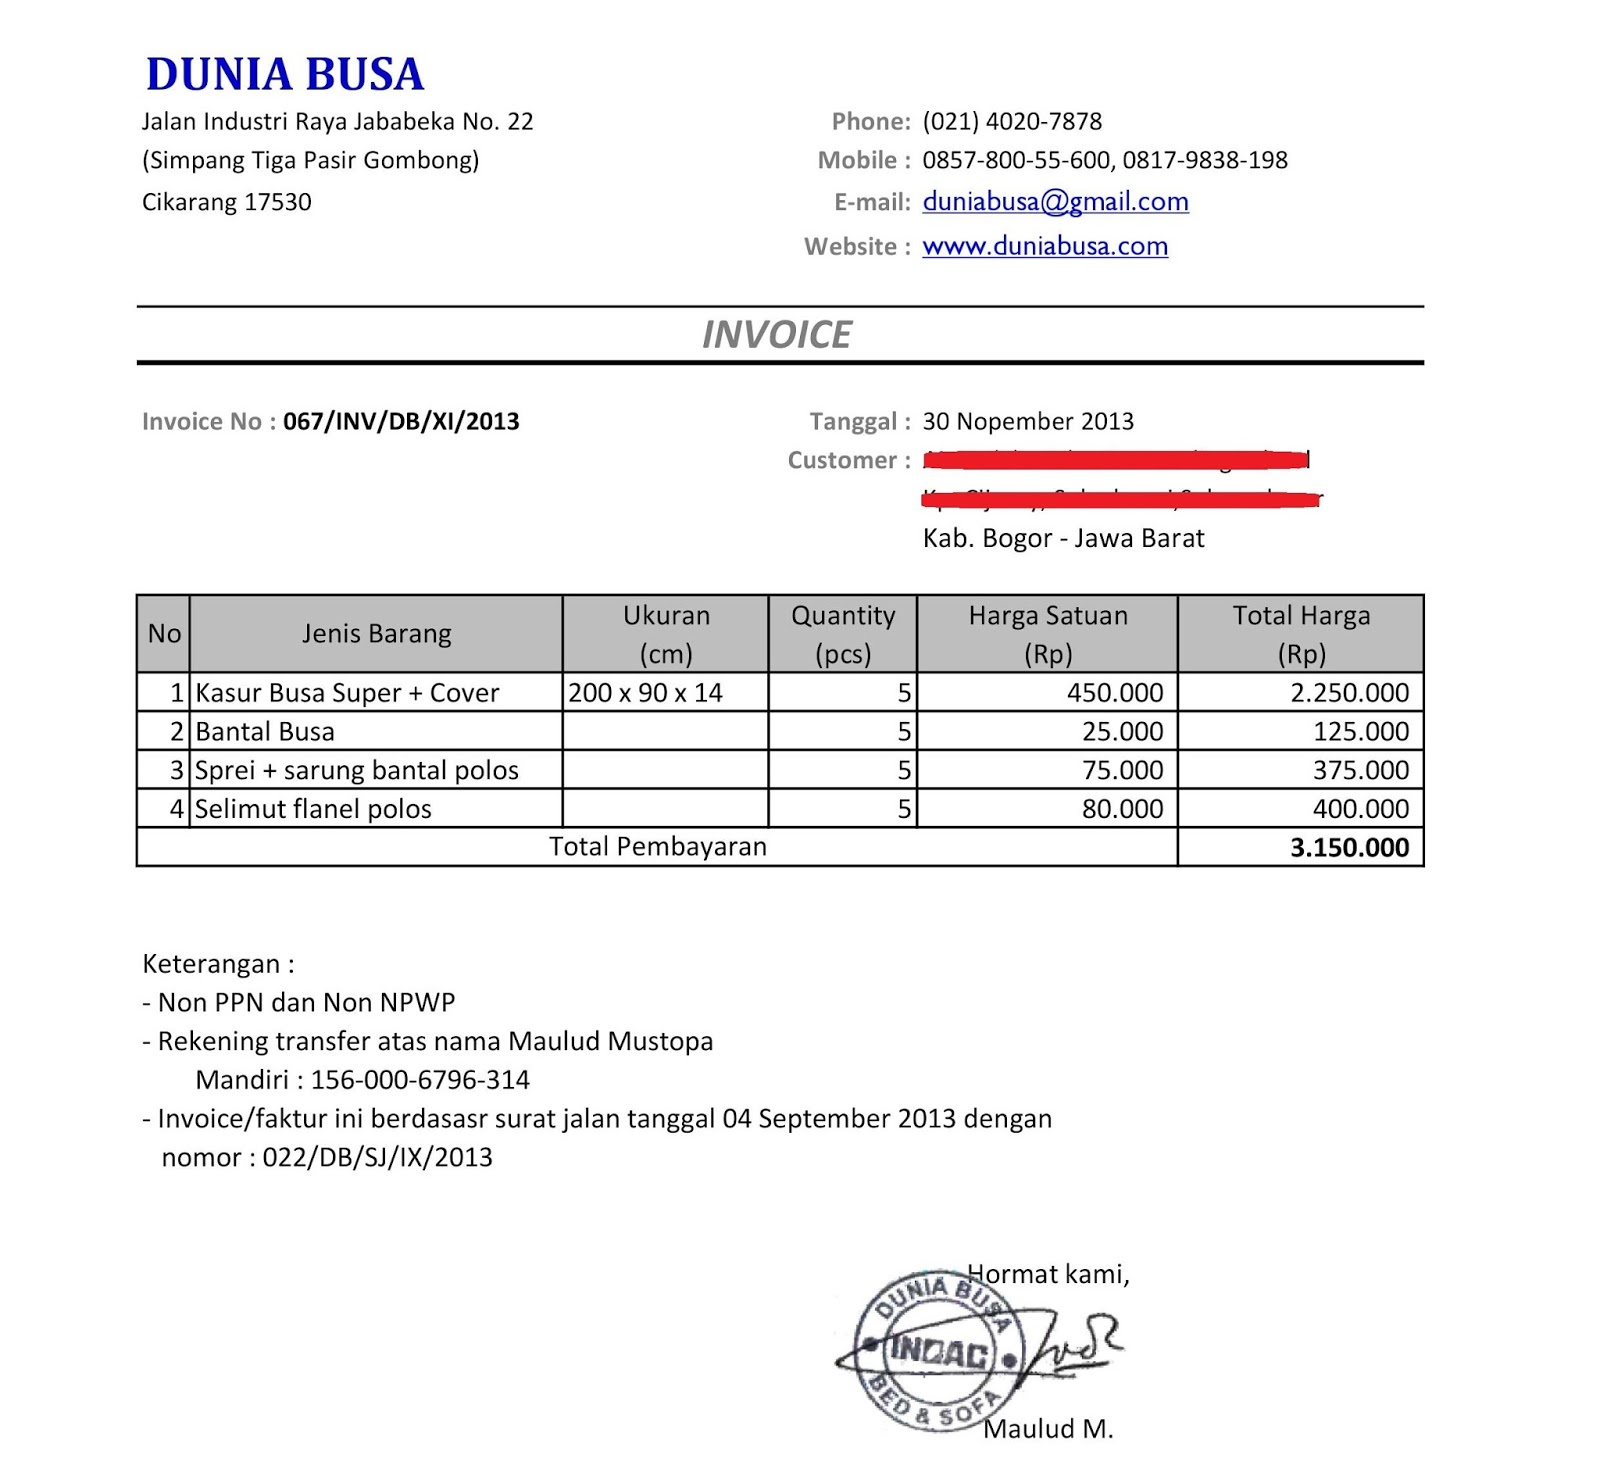 Contoh Invoice Dengan Down Payment Healthy Body Free Mind